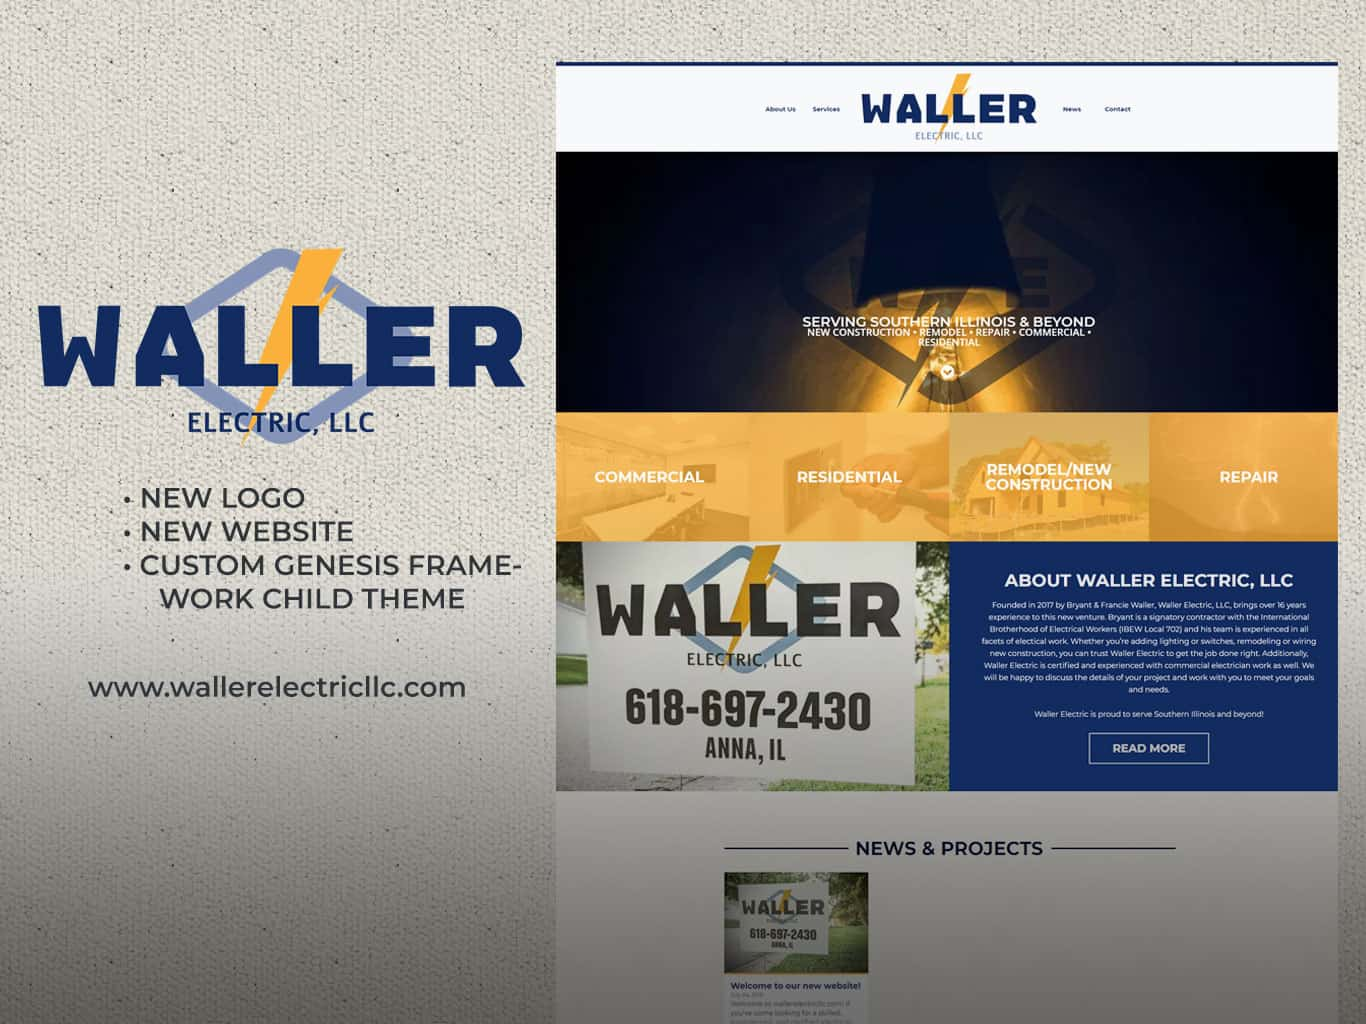 Responsive website & new logo design for Waller Electric, LLC